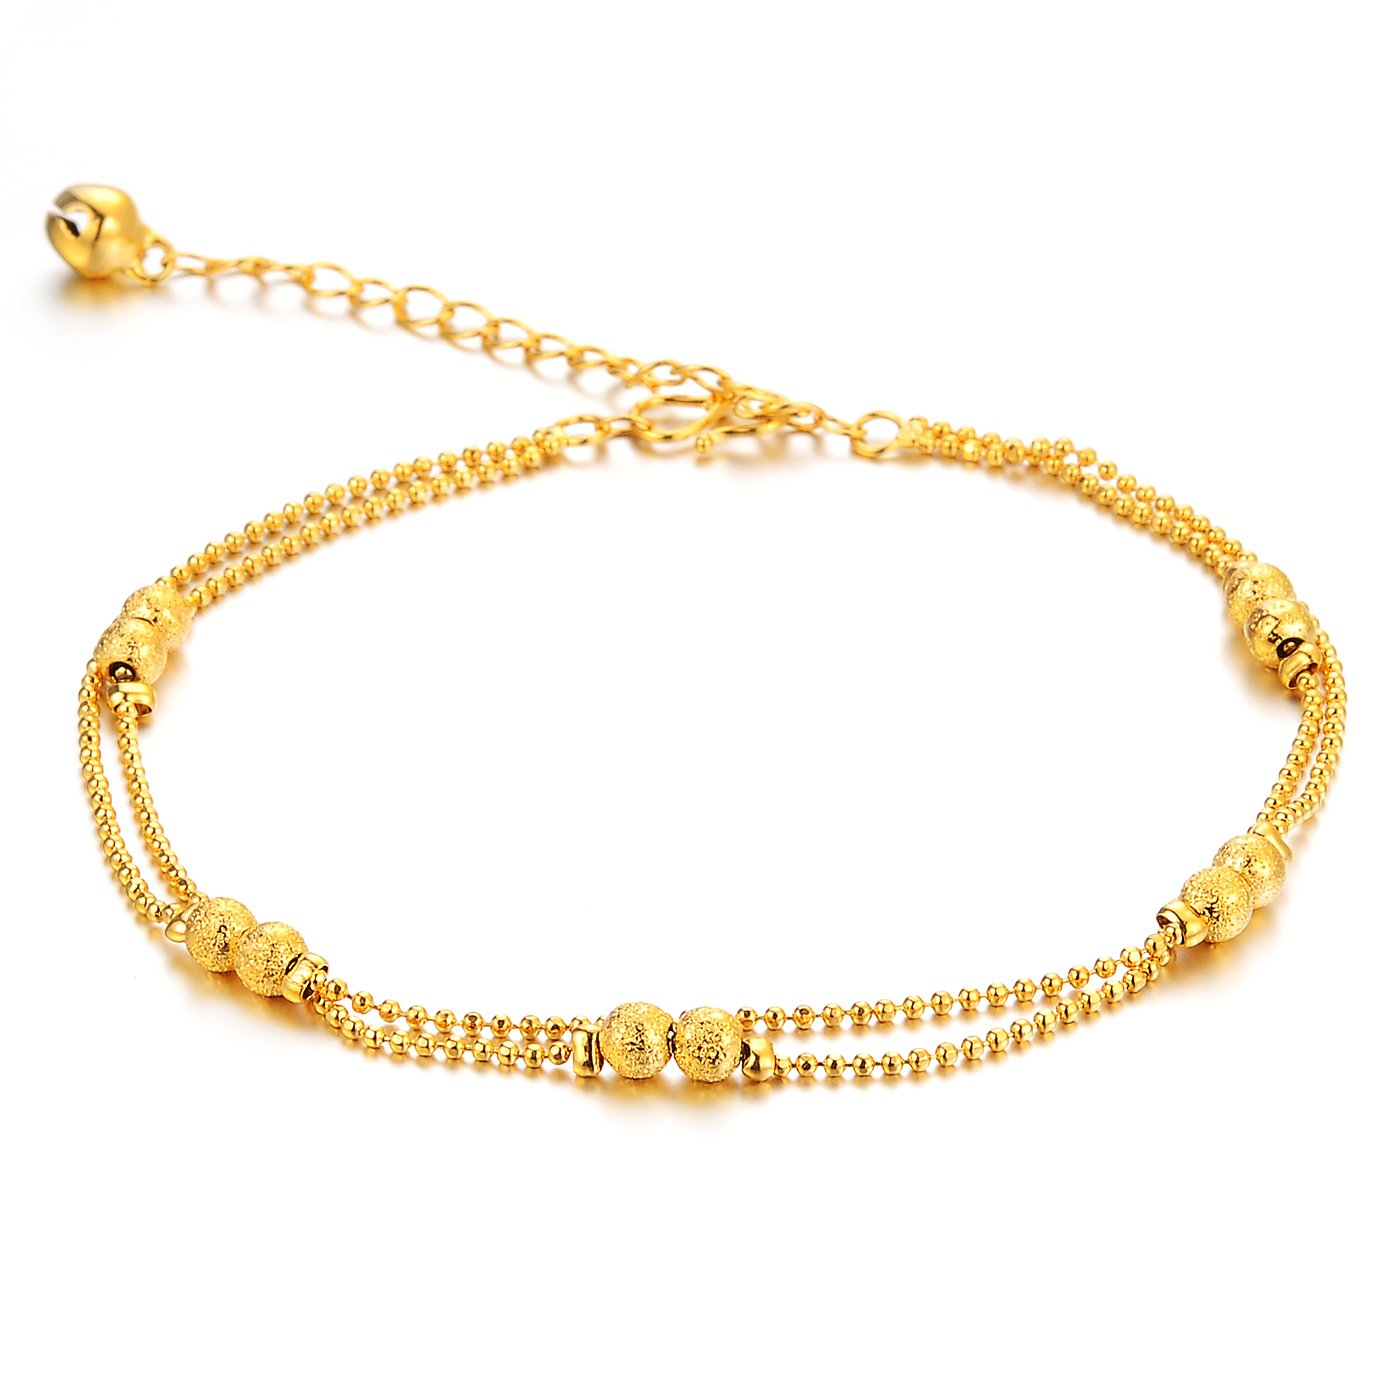 Women's Anklet Bracelet 18k Gold Plated Double Row Beads Grind Arenaceous Bead Pendants Foot Chain Adjustable L7.87''